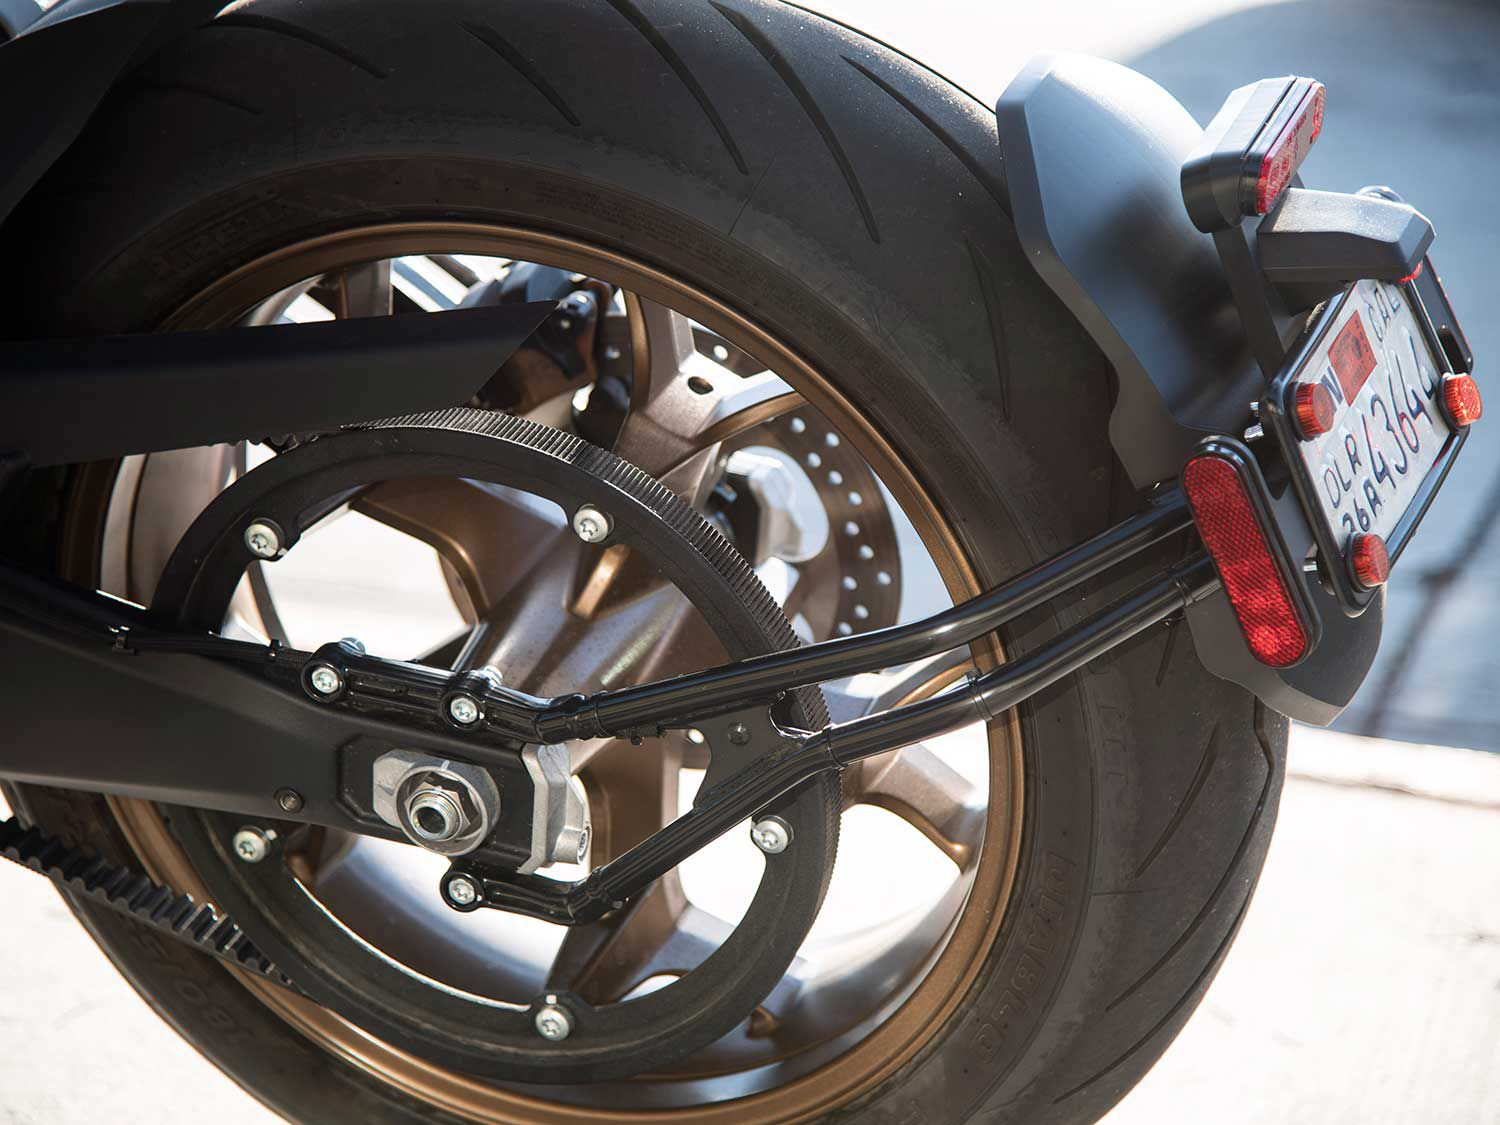 A giant rear belt sprocket betrays Zero's EV configuration.